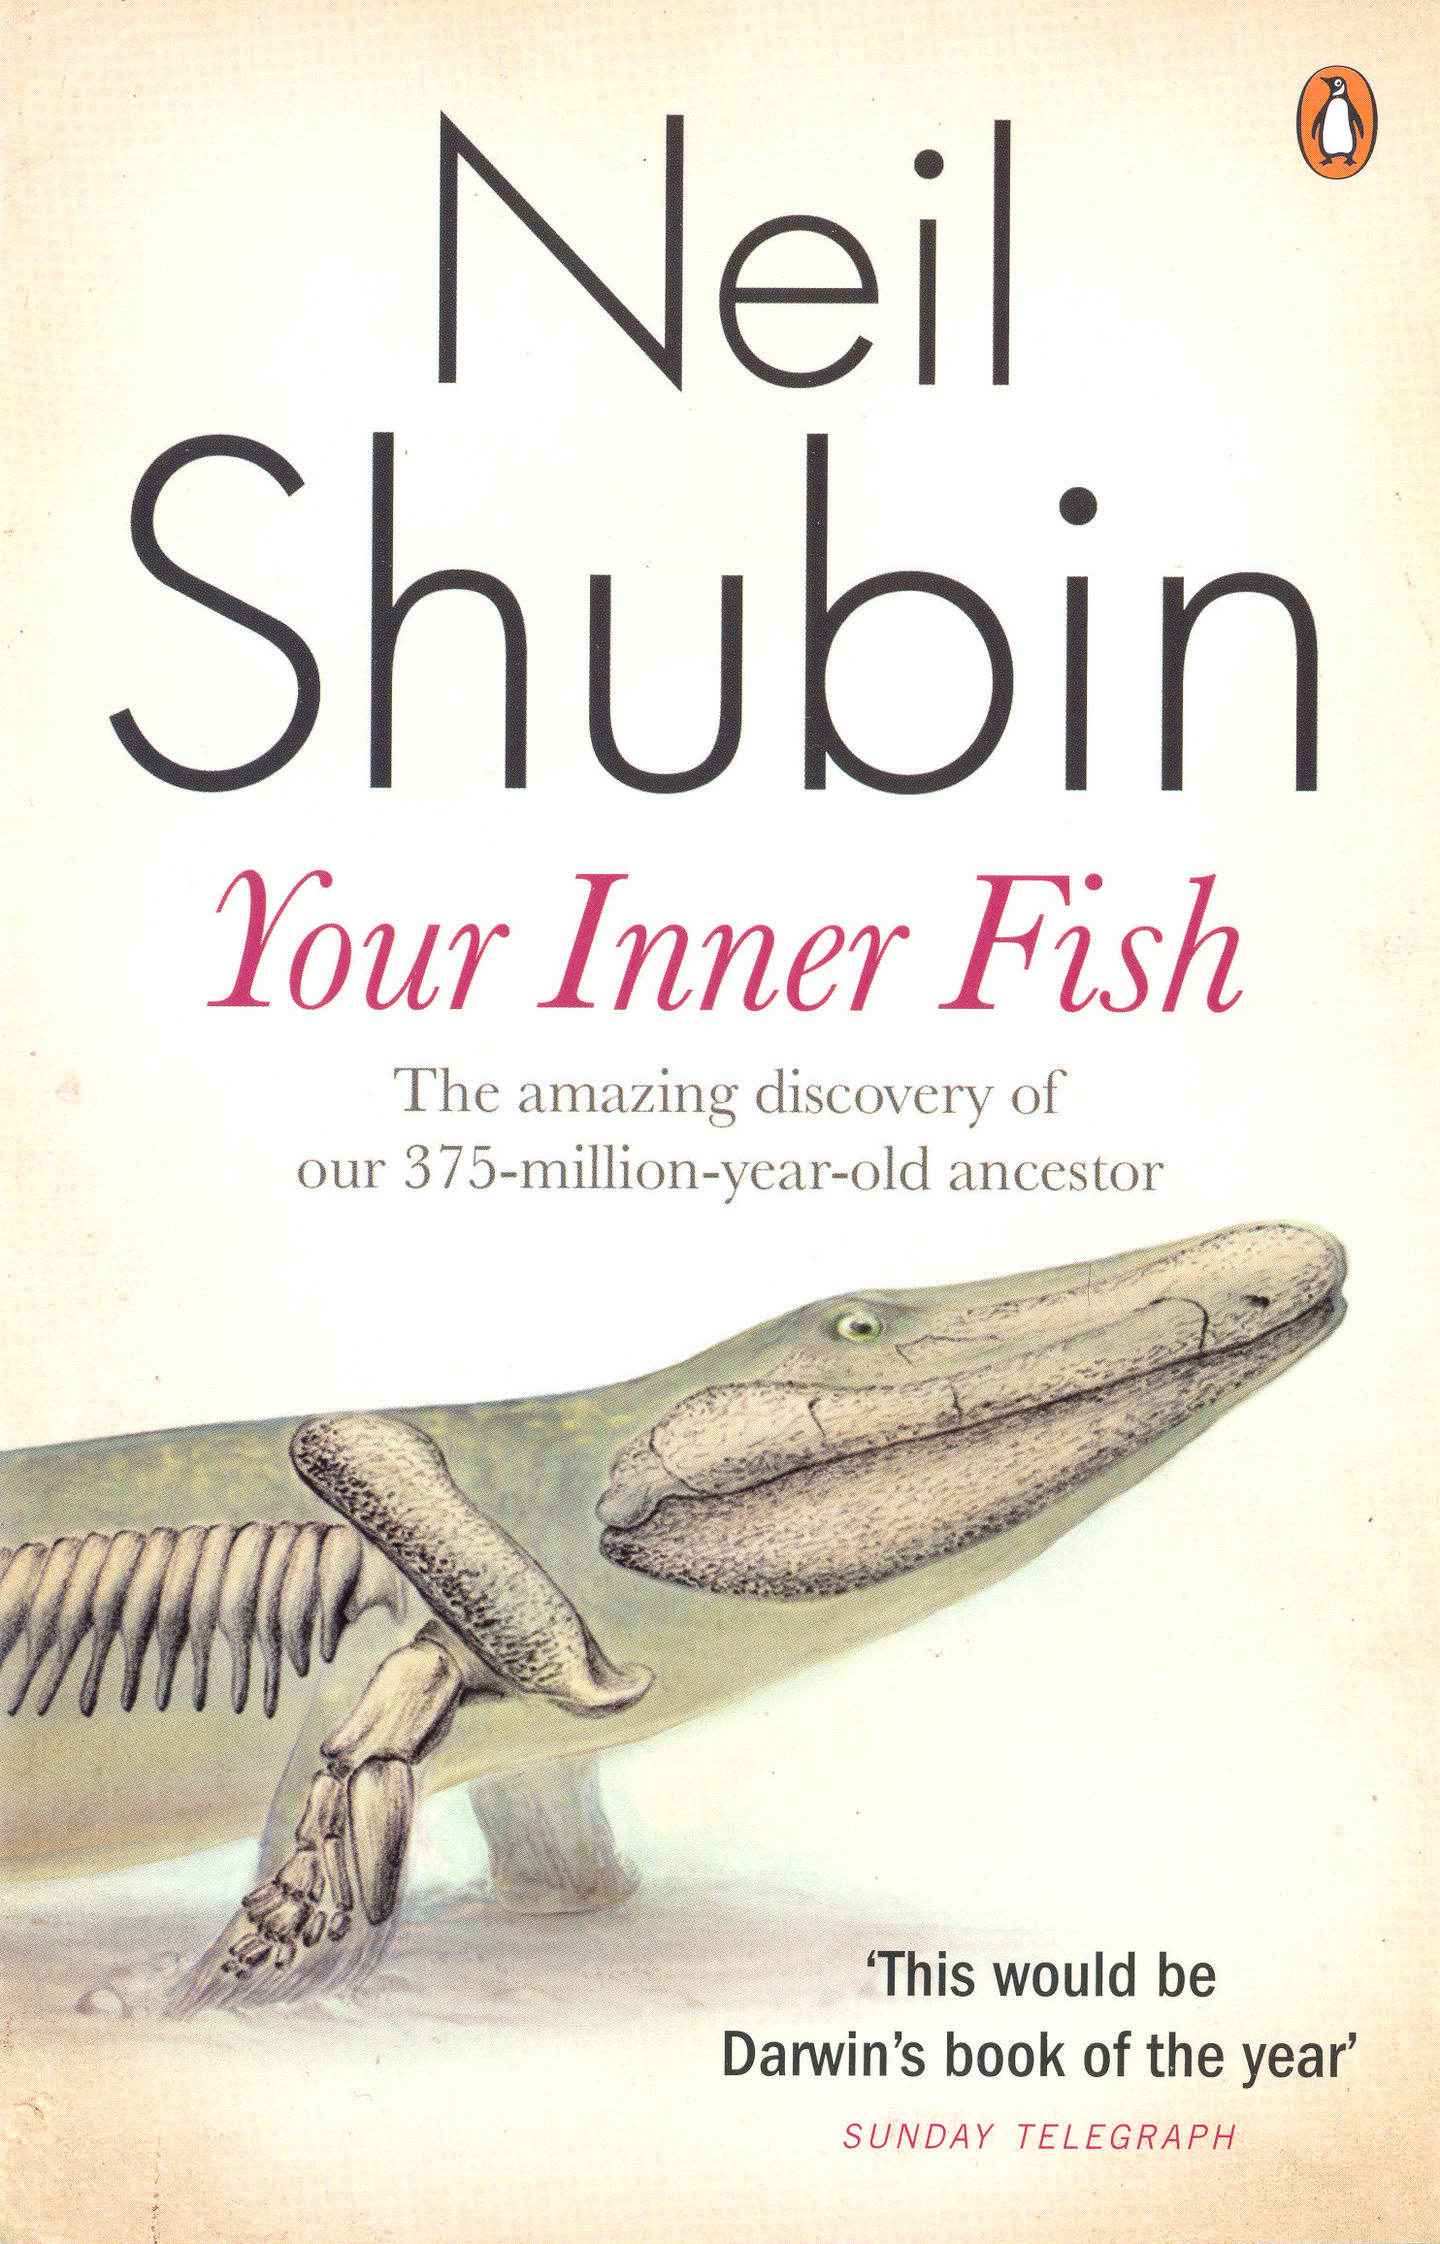 your inner fish neil shubin Neil shubin is the author of your inner fish (397 avg rating, 17535 ratings, 1205 reviews, published 2008), the universe within (384 avg rating, 2015 r.